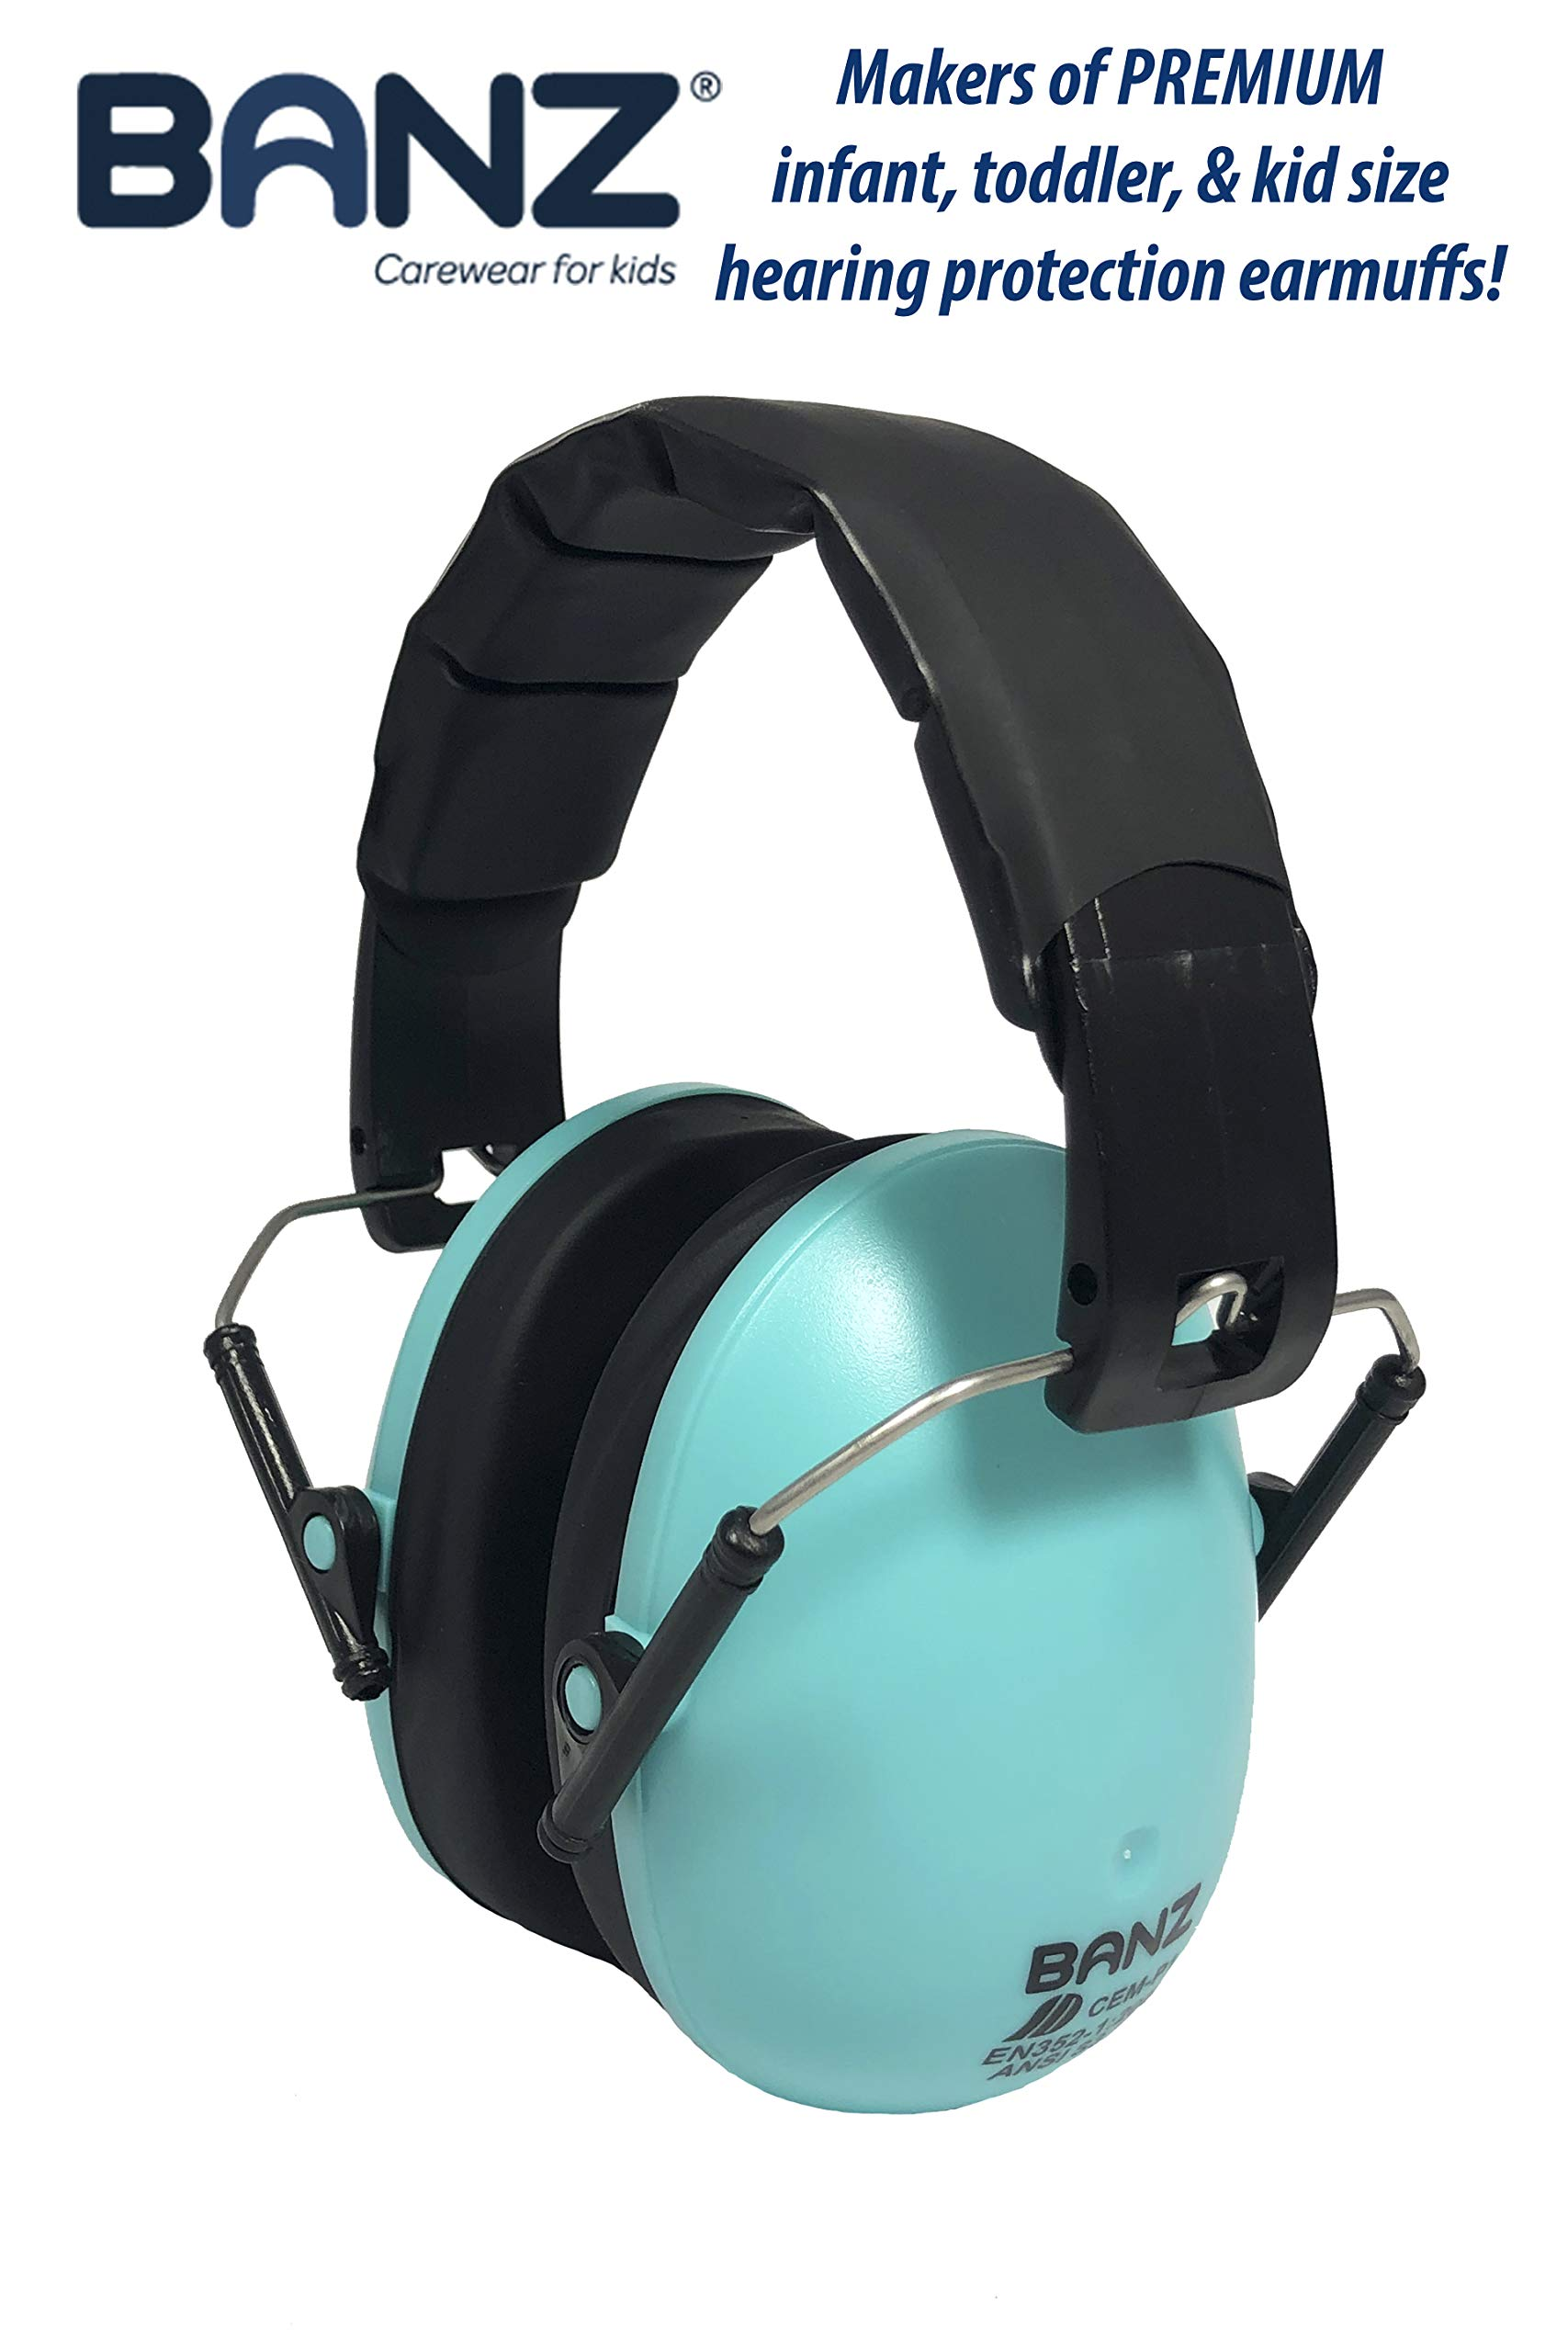 Baby Banz Earmuffs Kids Hearing Protection - Ages 2+ Years - THE BEST EARMUFFS FOR KIDS - Industry Leading Noise Reduction Rating - Soft & Comfortable - Kids Ear Protection, Turquoise